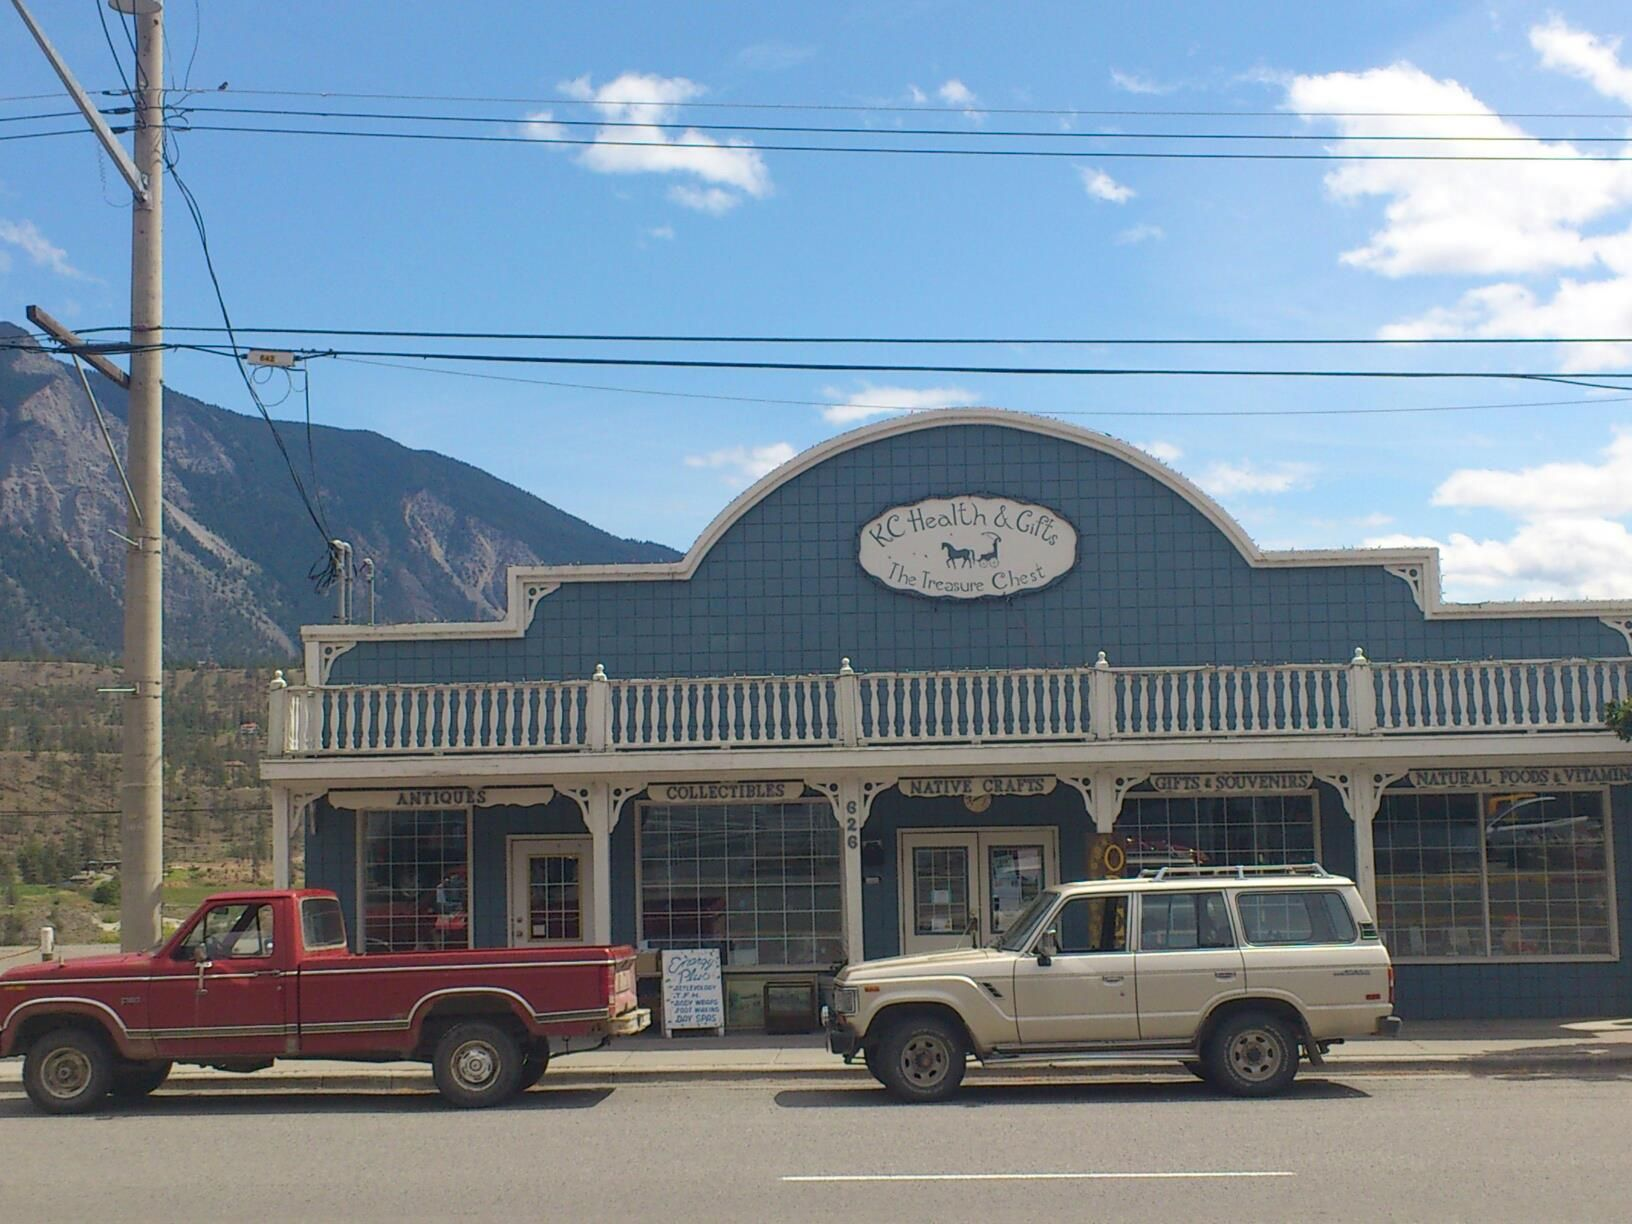 Lillooet (BC) Canada  city pictures gallery : 301 Moved Permanently